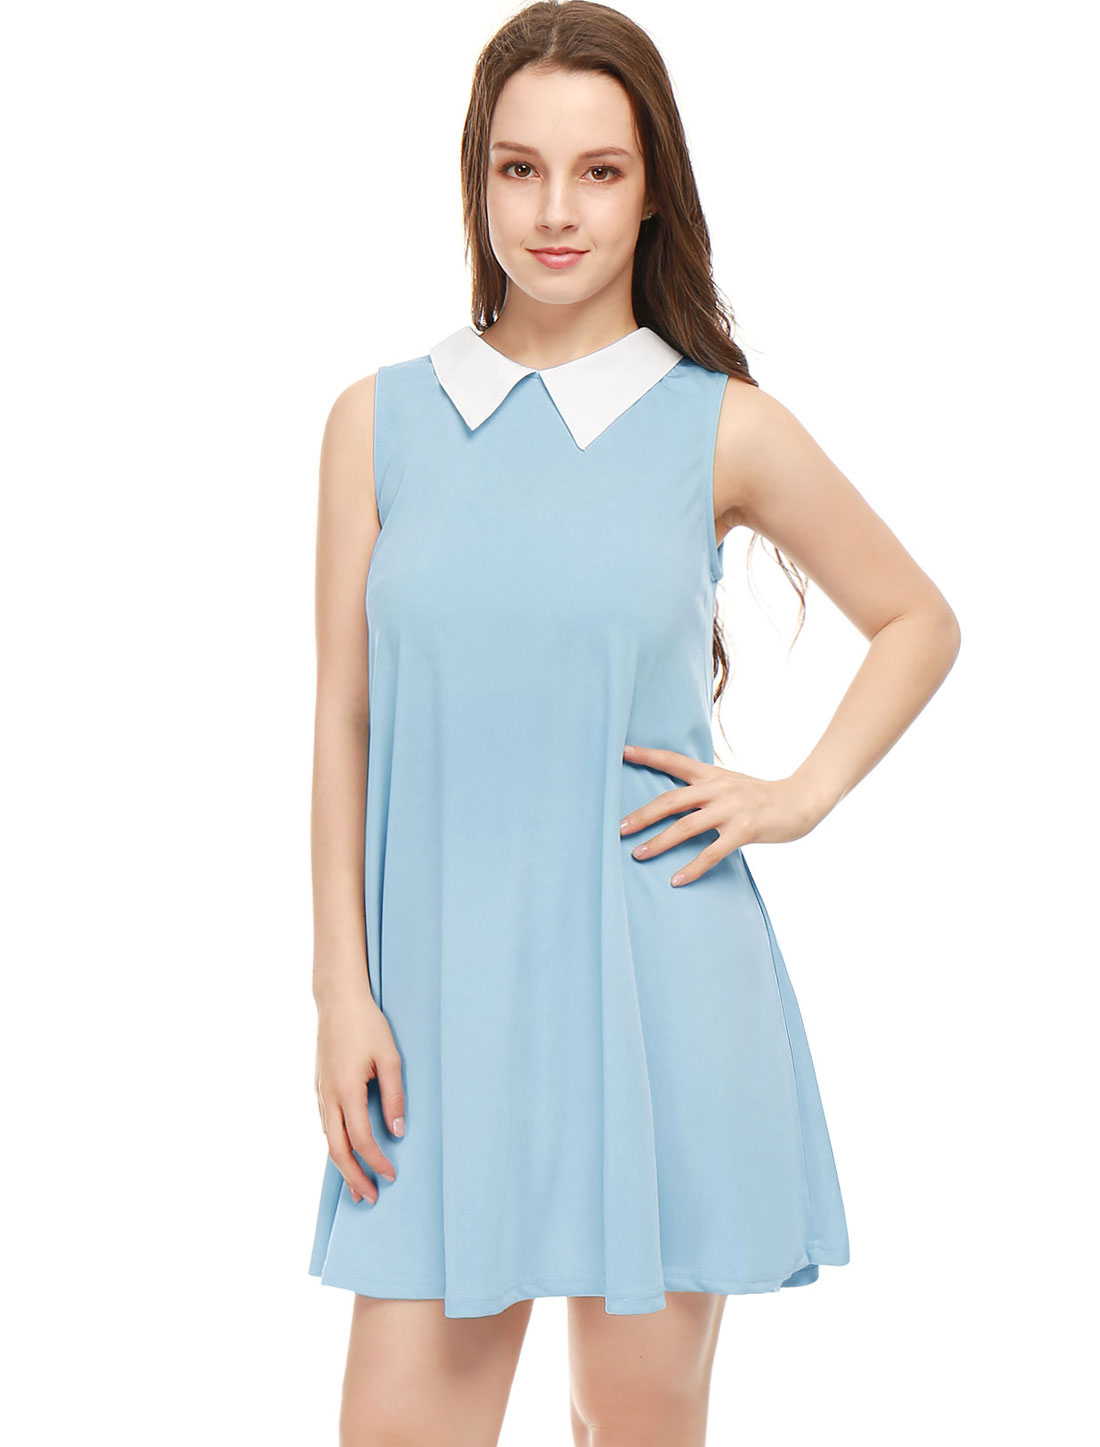 Allegra K Women Contrast Color Peter Pan Collar Sleeveless Swing Dress Blue L